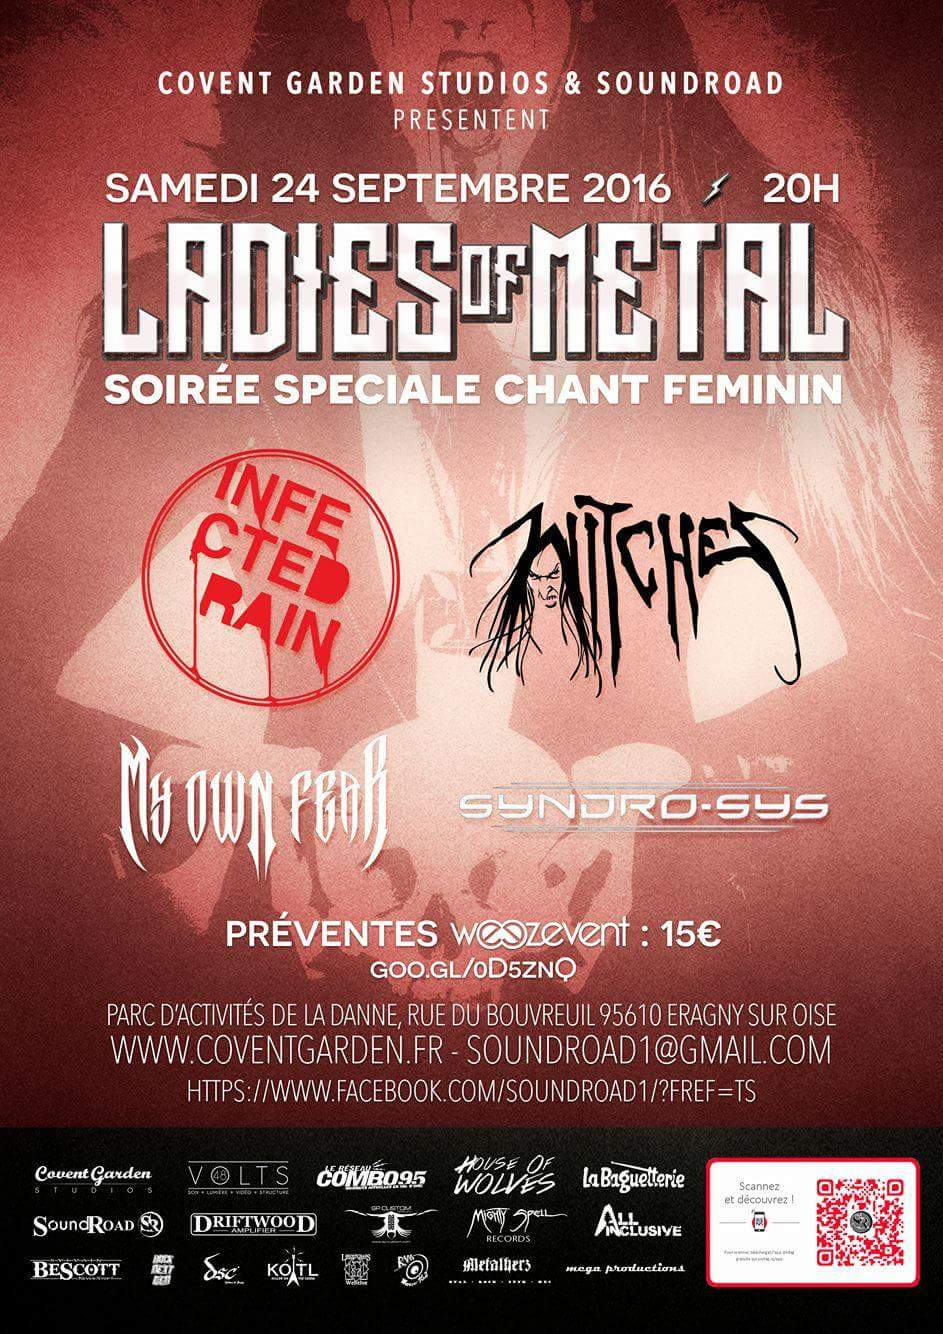 Witches flyer Infected Rain (Mol) - WITCHES - My Own Fear - Syndro-Sys  @ Ladies of Metal Covent Garden Eragny (95) - France